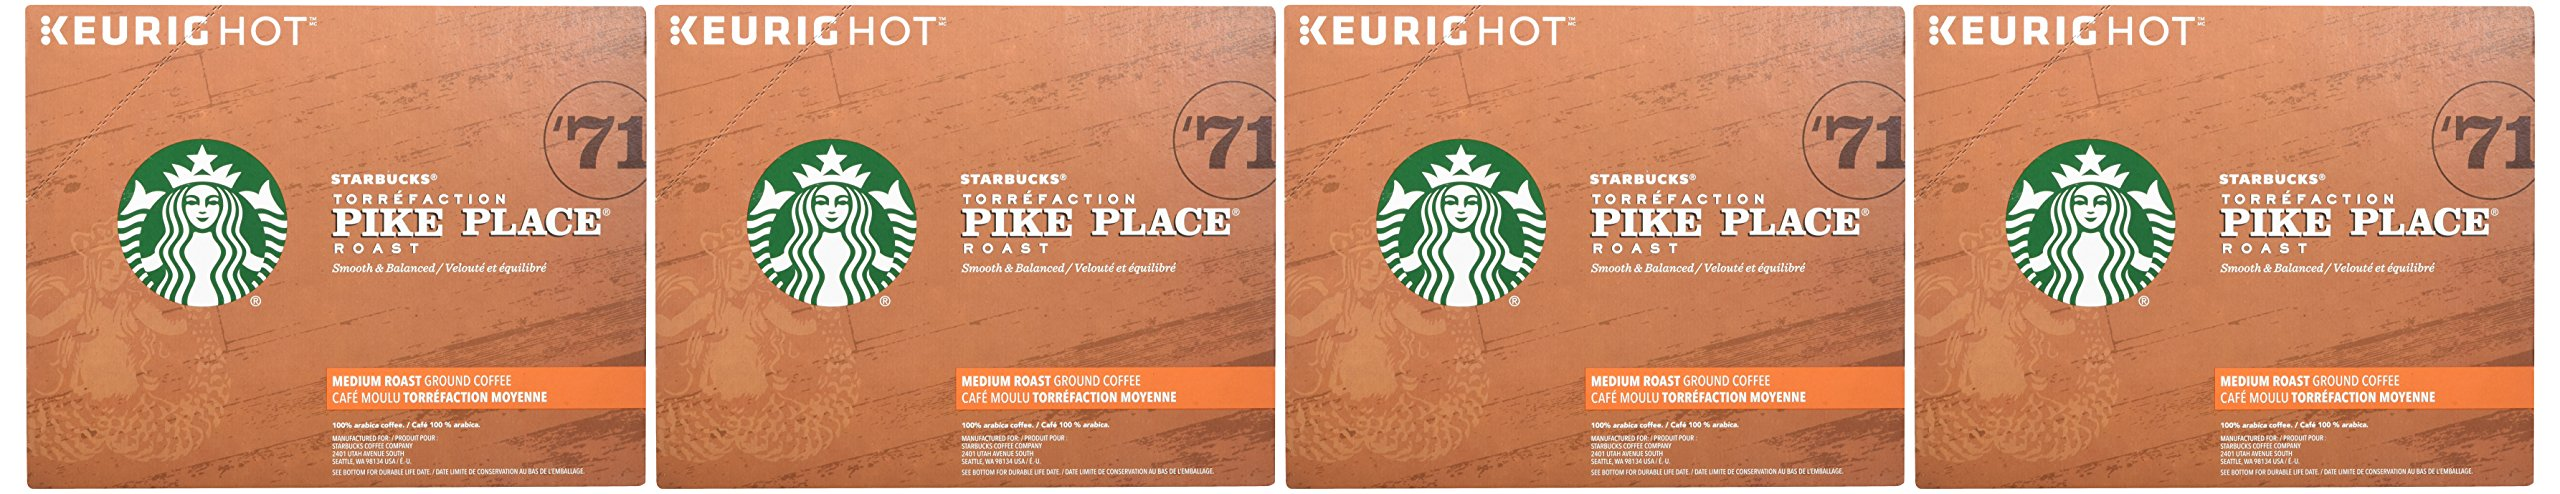 Starbucks Pike Place Roast Medium Roast Single Cup Coffee for Keurig Brewers, 4 boxes of 24 (96 total K-Cup pods) by Starbucks (Image #2)